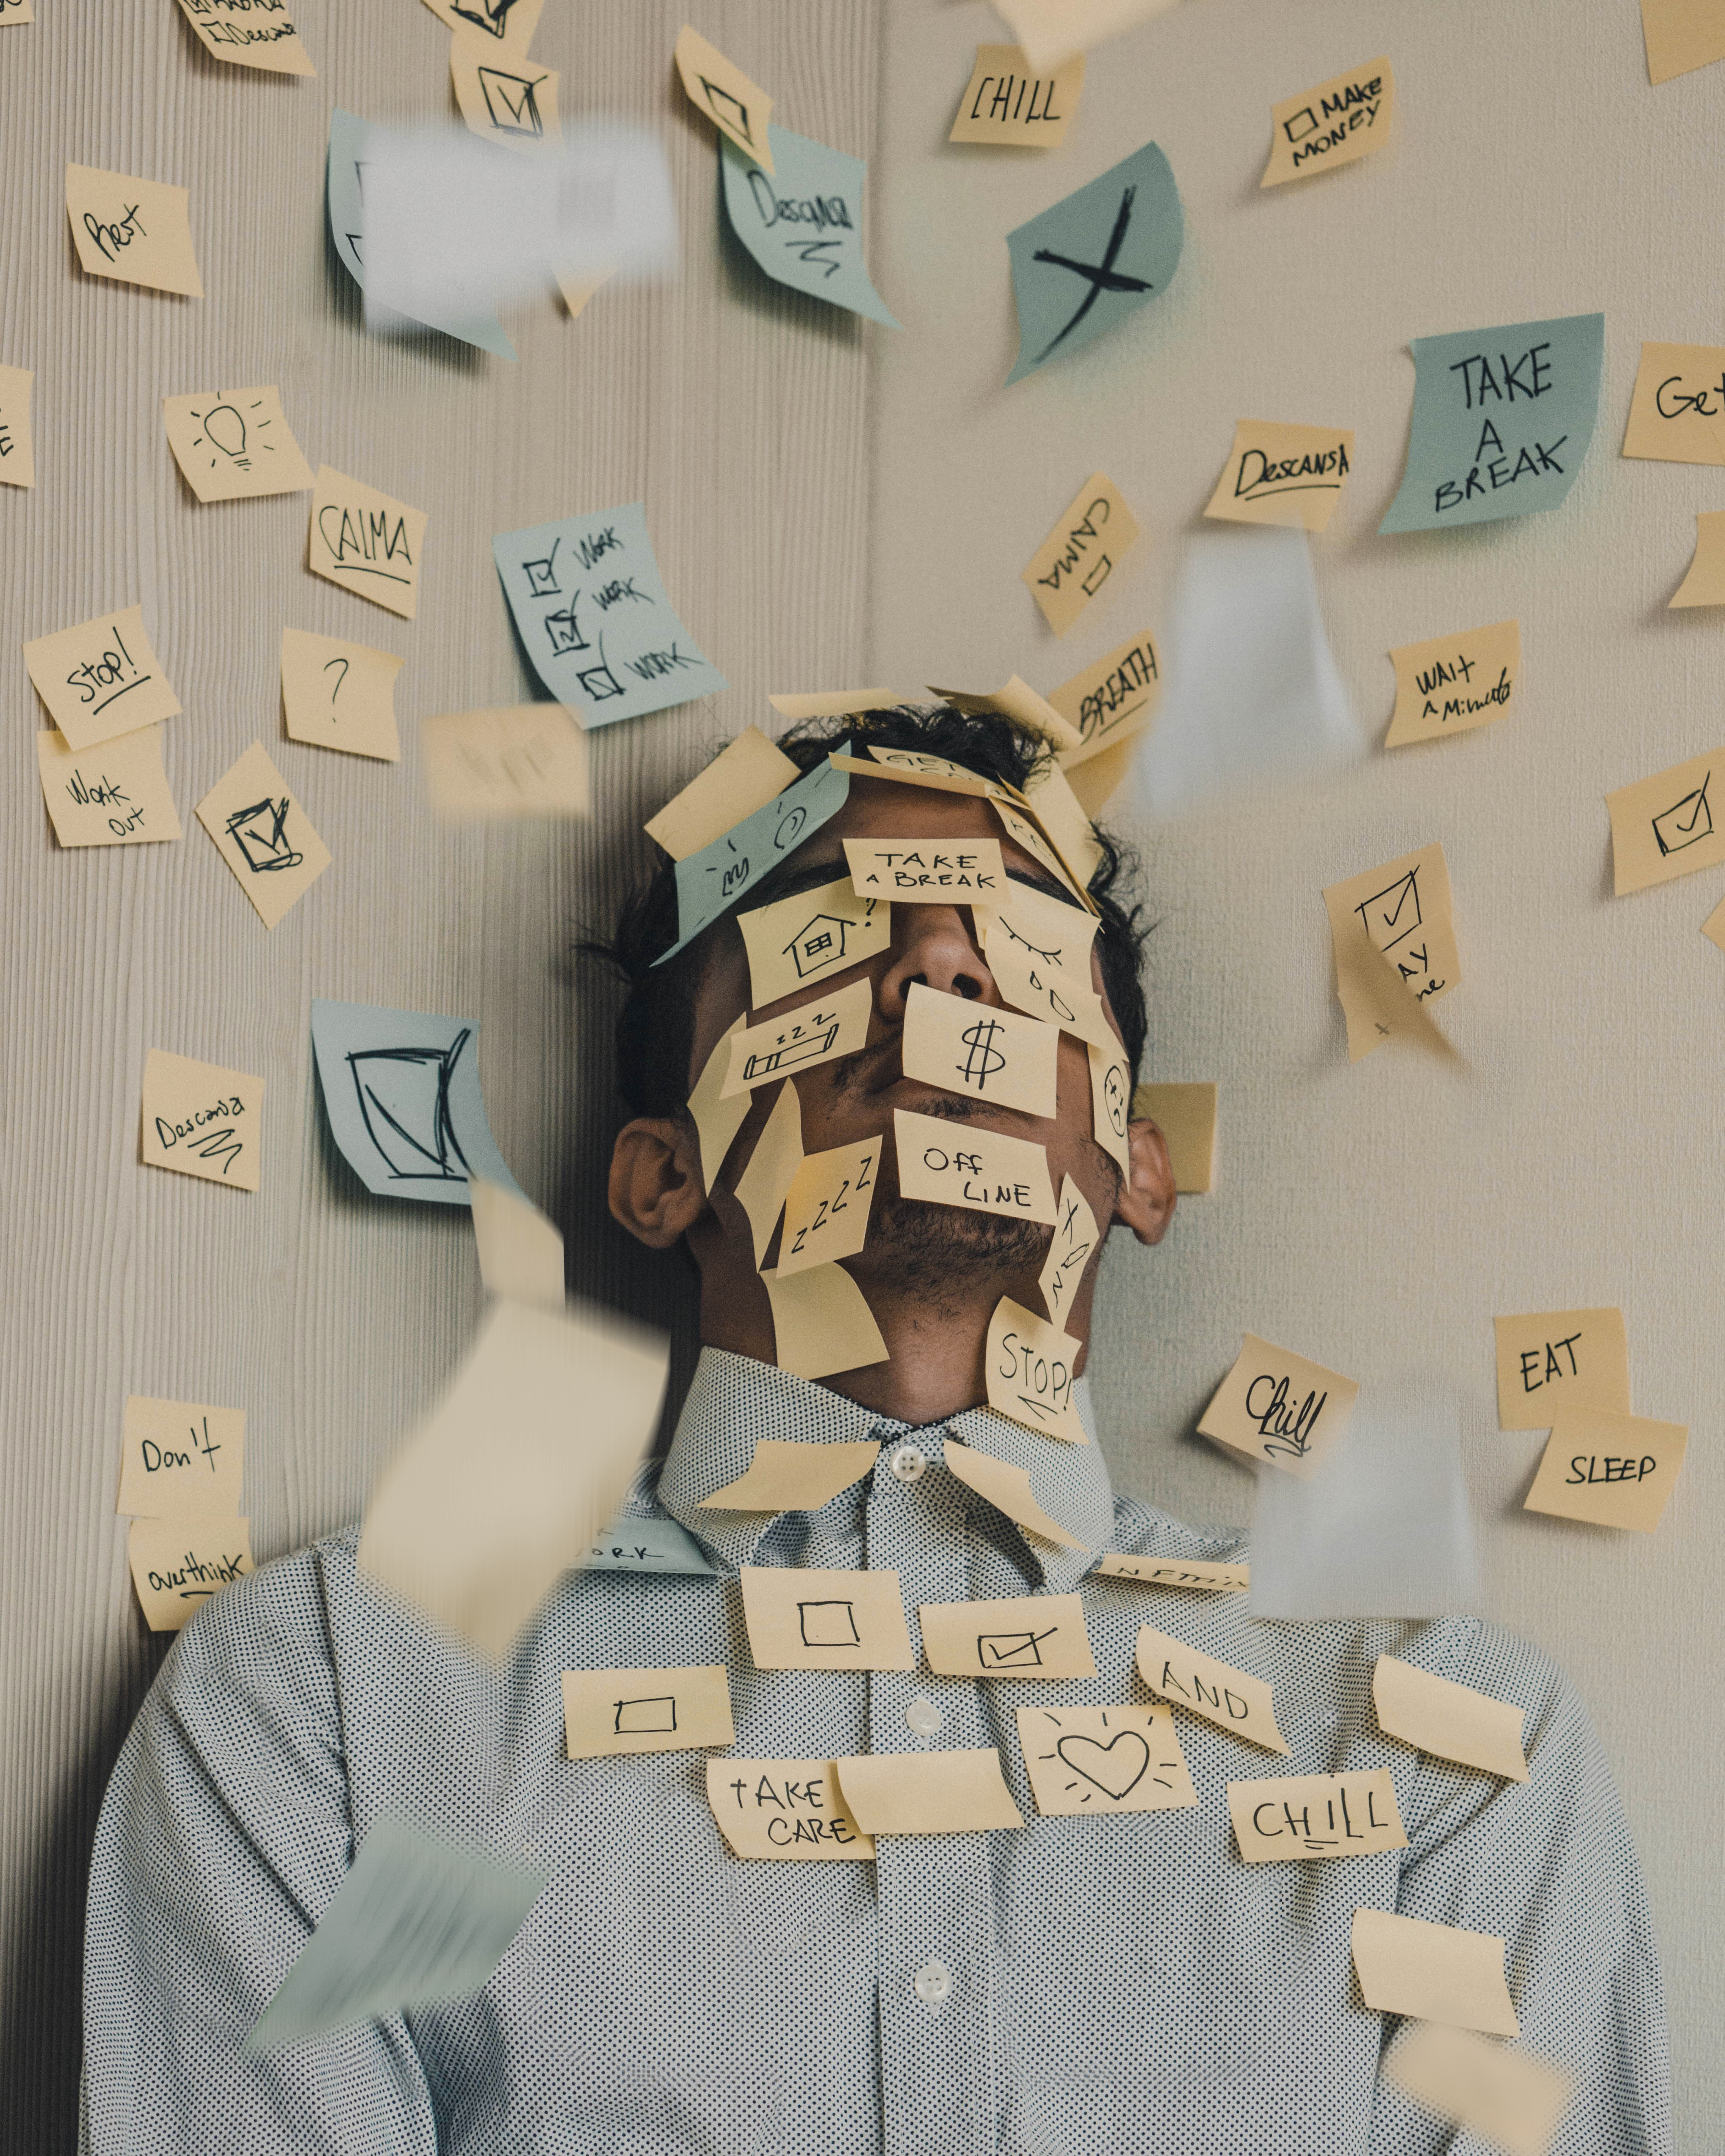 A person stands against a wall with to-do items written on sticky notes on him and the wall. #overwork #productivity